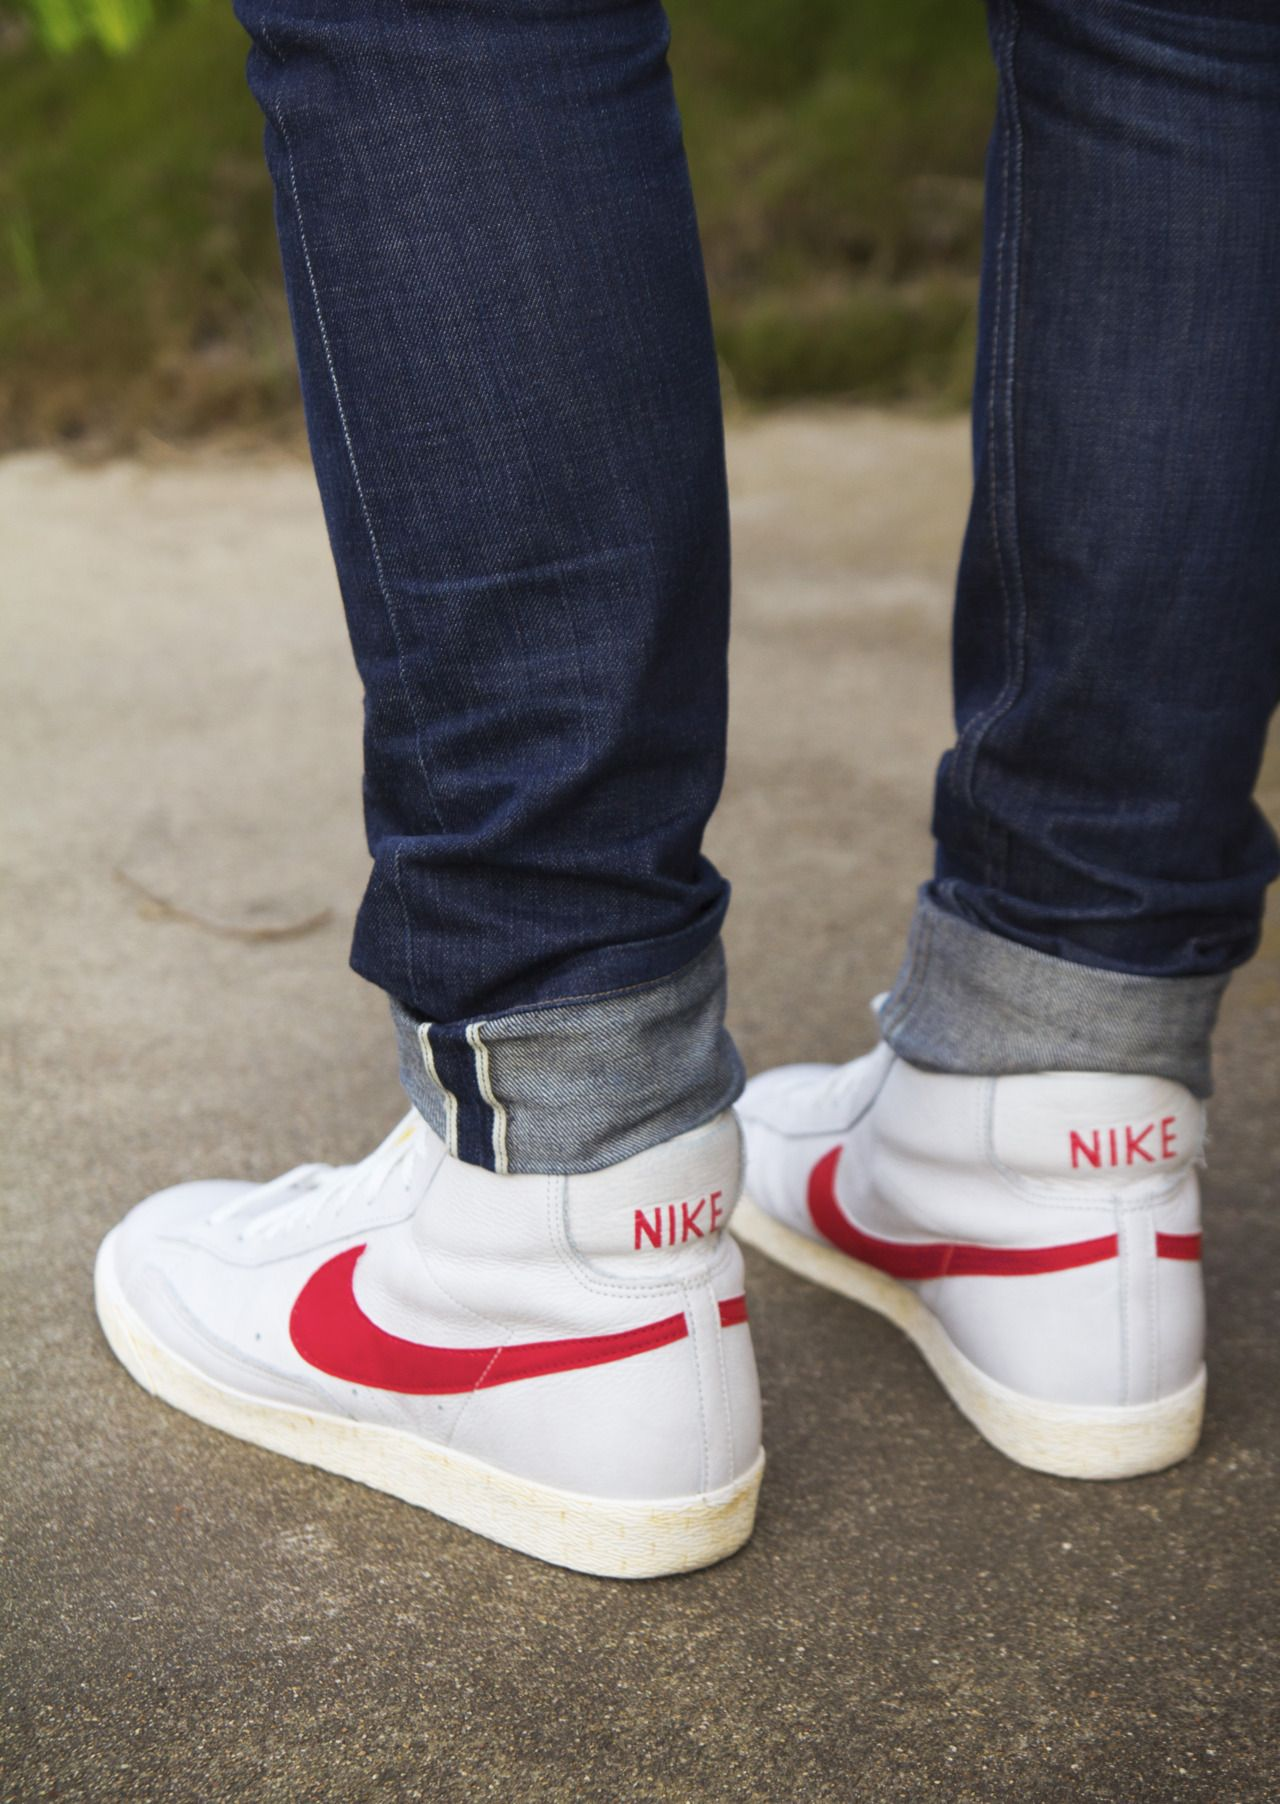 Want: A Pair of Retro-Cool Nike Blazer Mid '77sSneakers